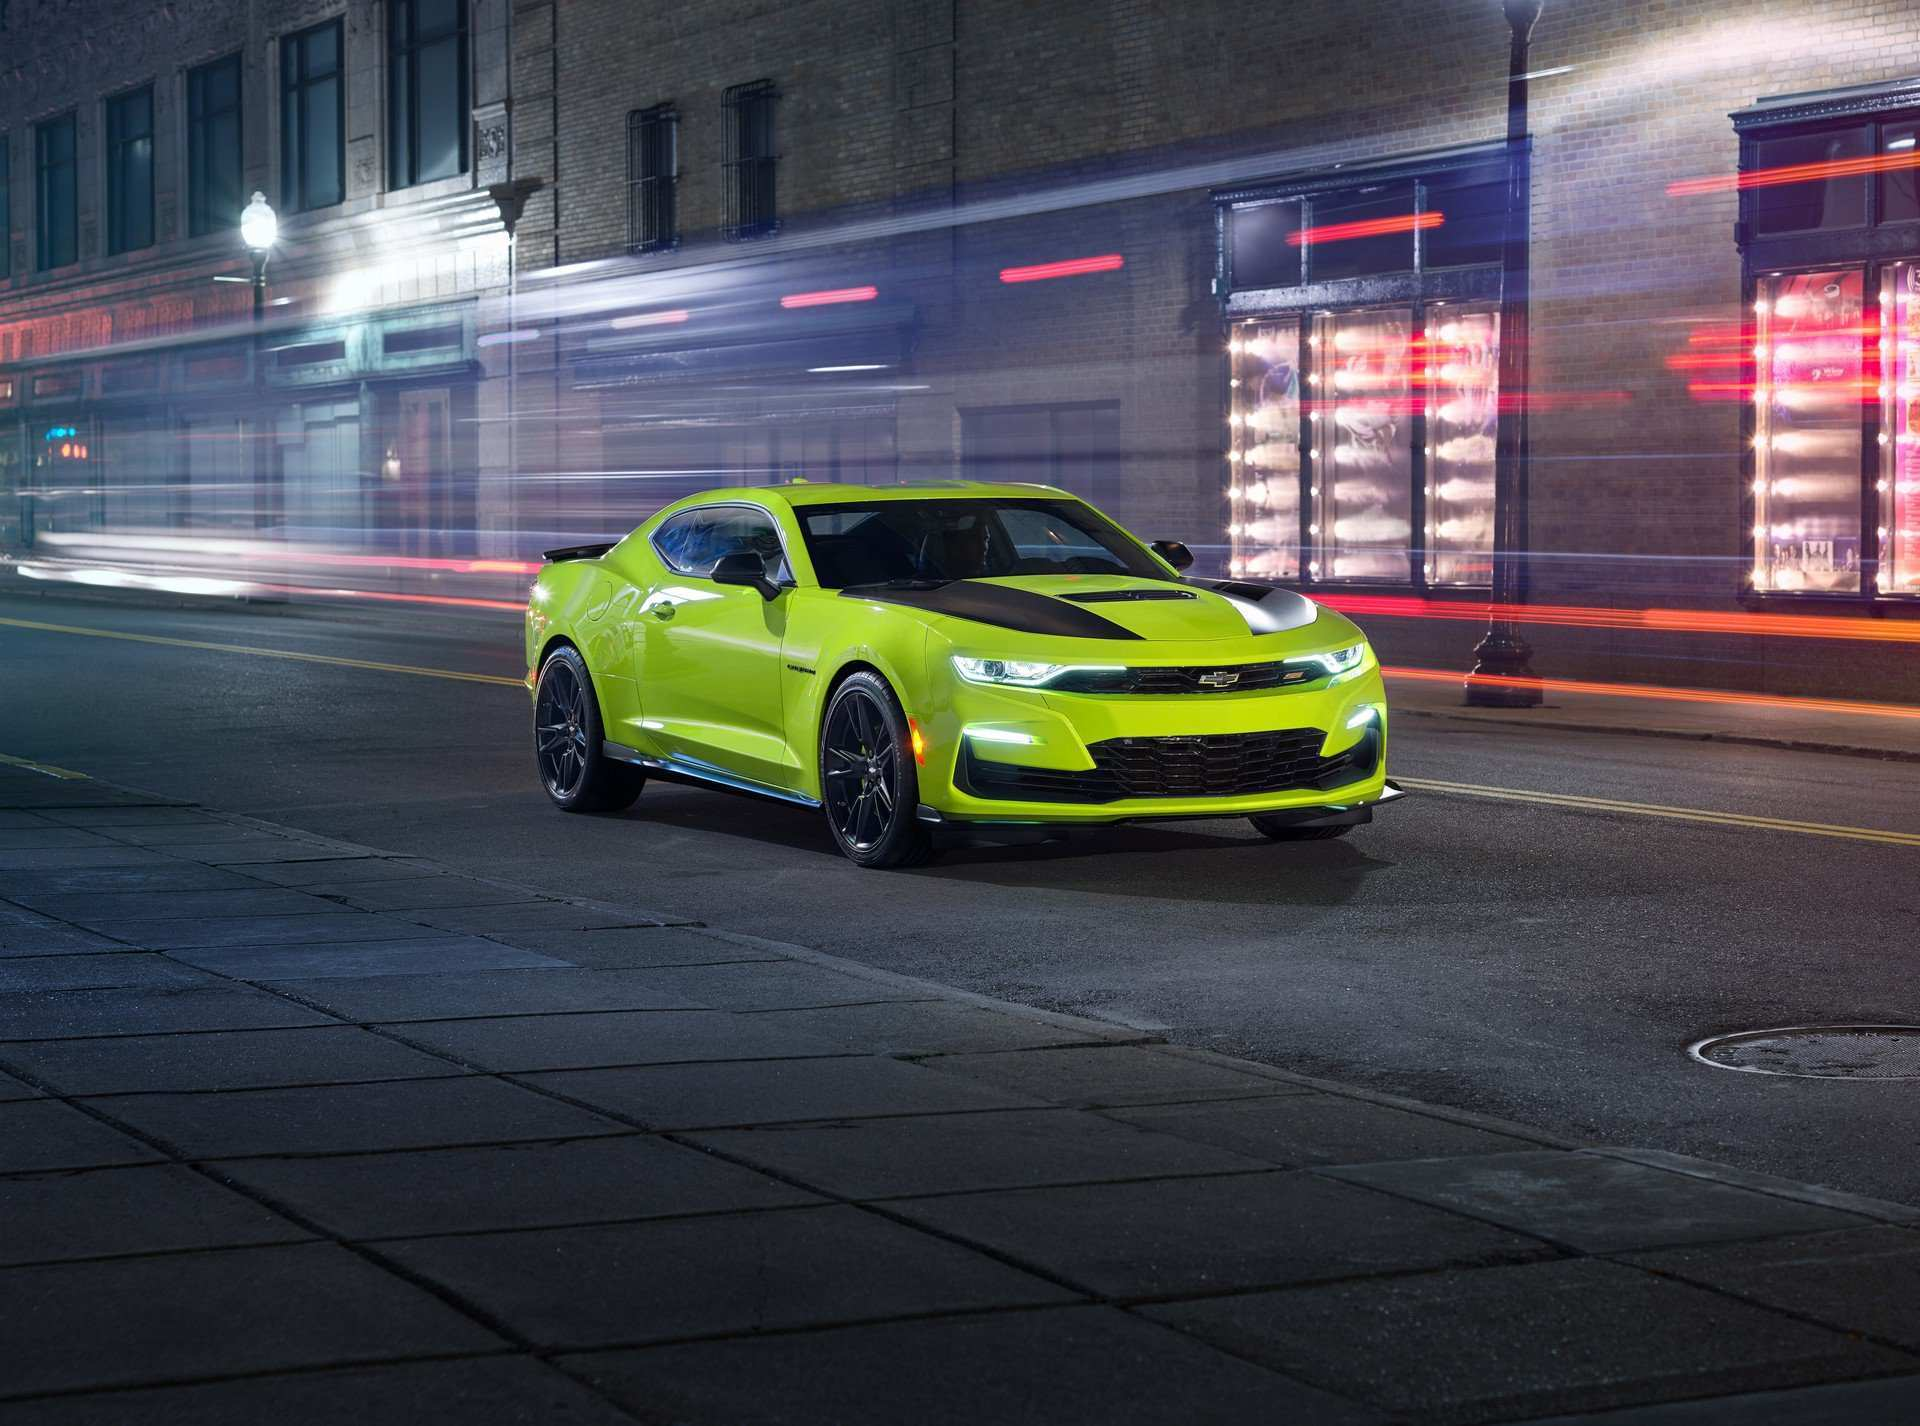 34 Best Review 2020 The Camaro Ss Ratings with 2020 The Camaro Ss